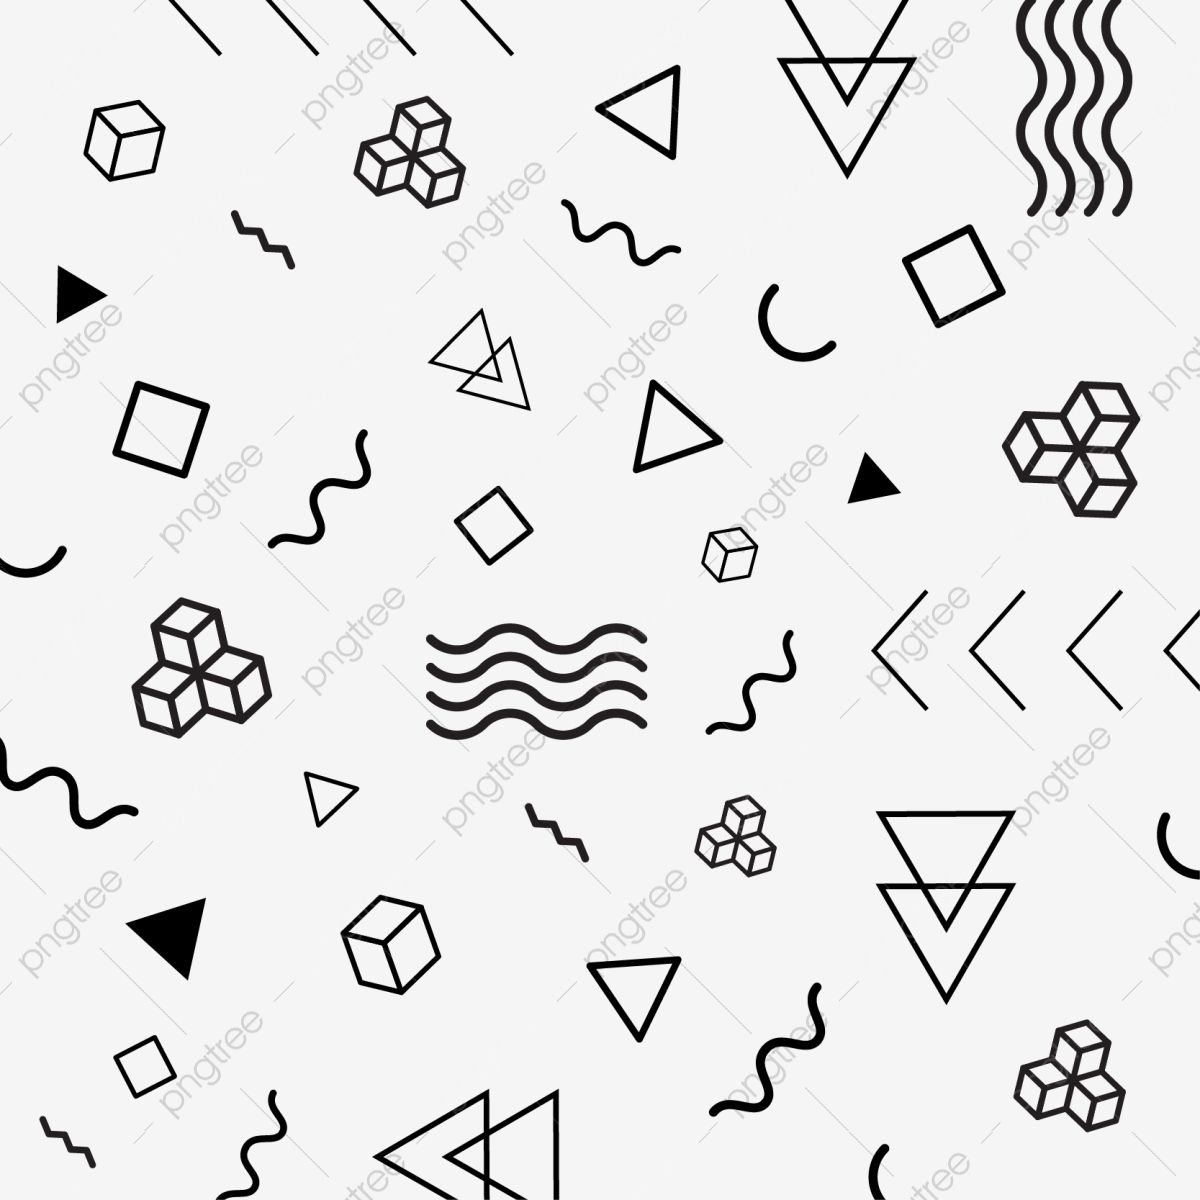 Modern Abstract Memphis Geometric Shapes Vector Vector Clipart Pattern Geometric Png And Vector With Transparent Background For Free Download Geometric Shapes Geometric Memphis